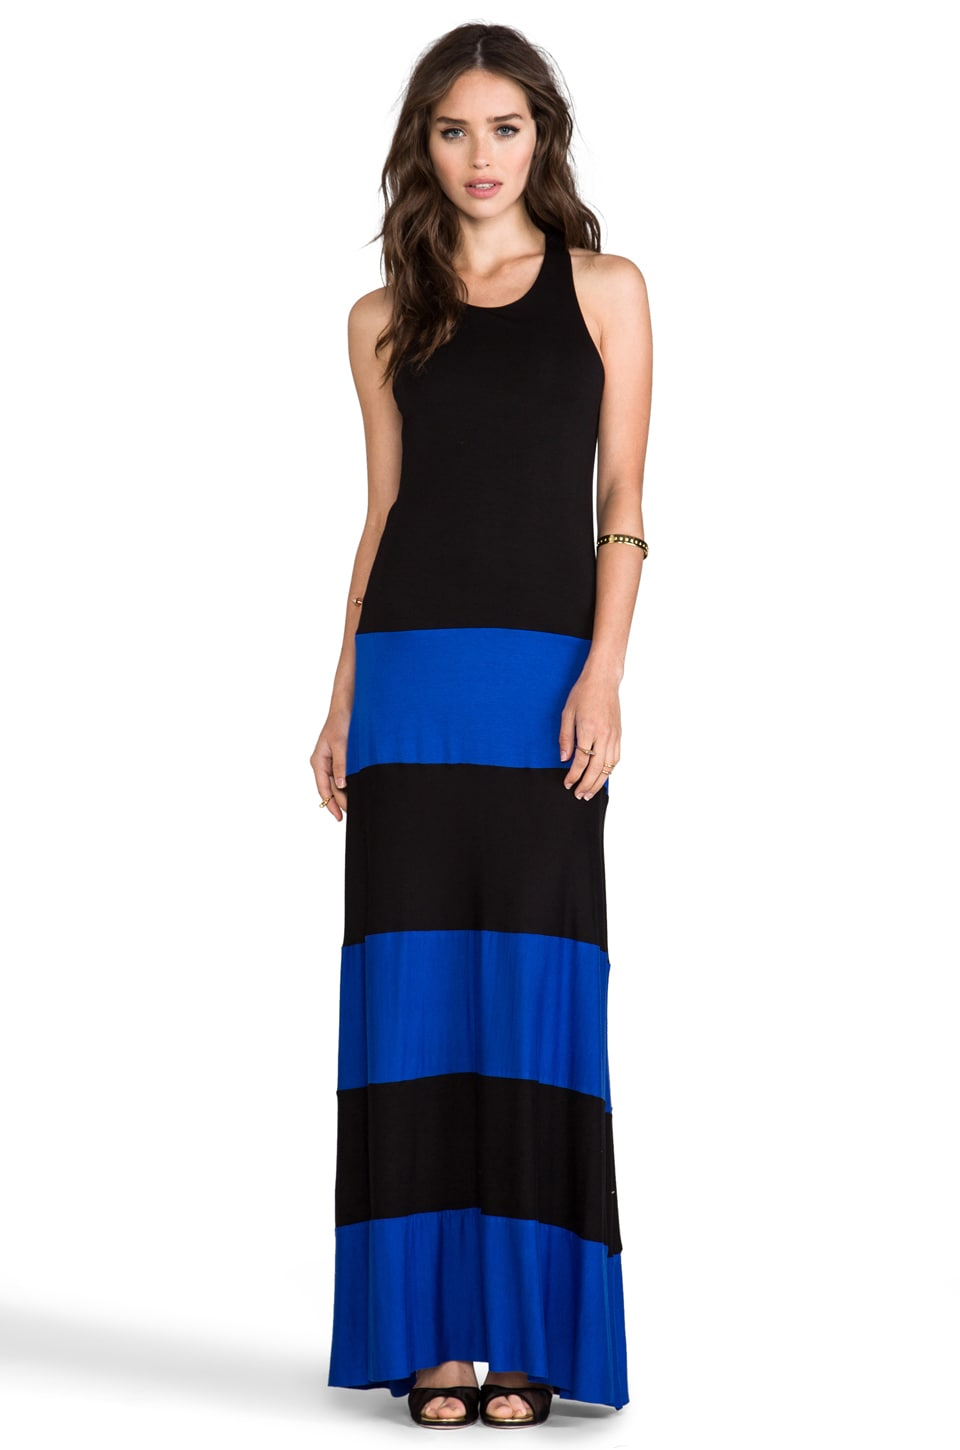 Karina Grimaldi EXCLUSIVE Biscot Sleeveless Maxi in Royal Blue Black